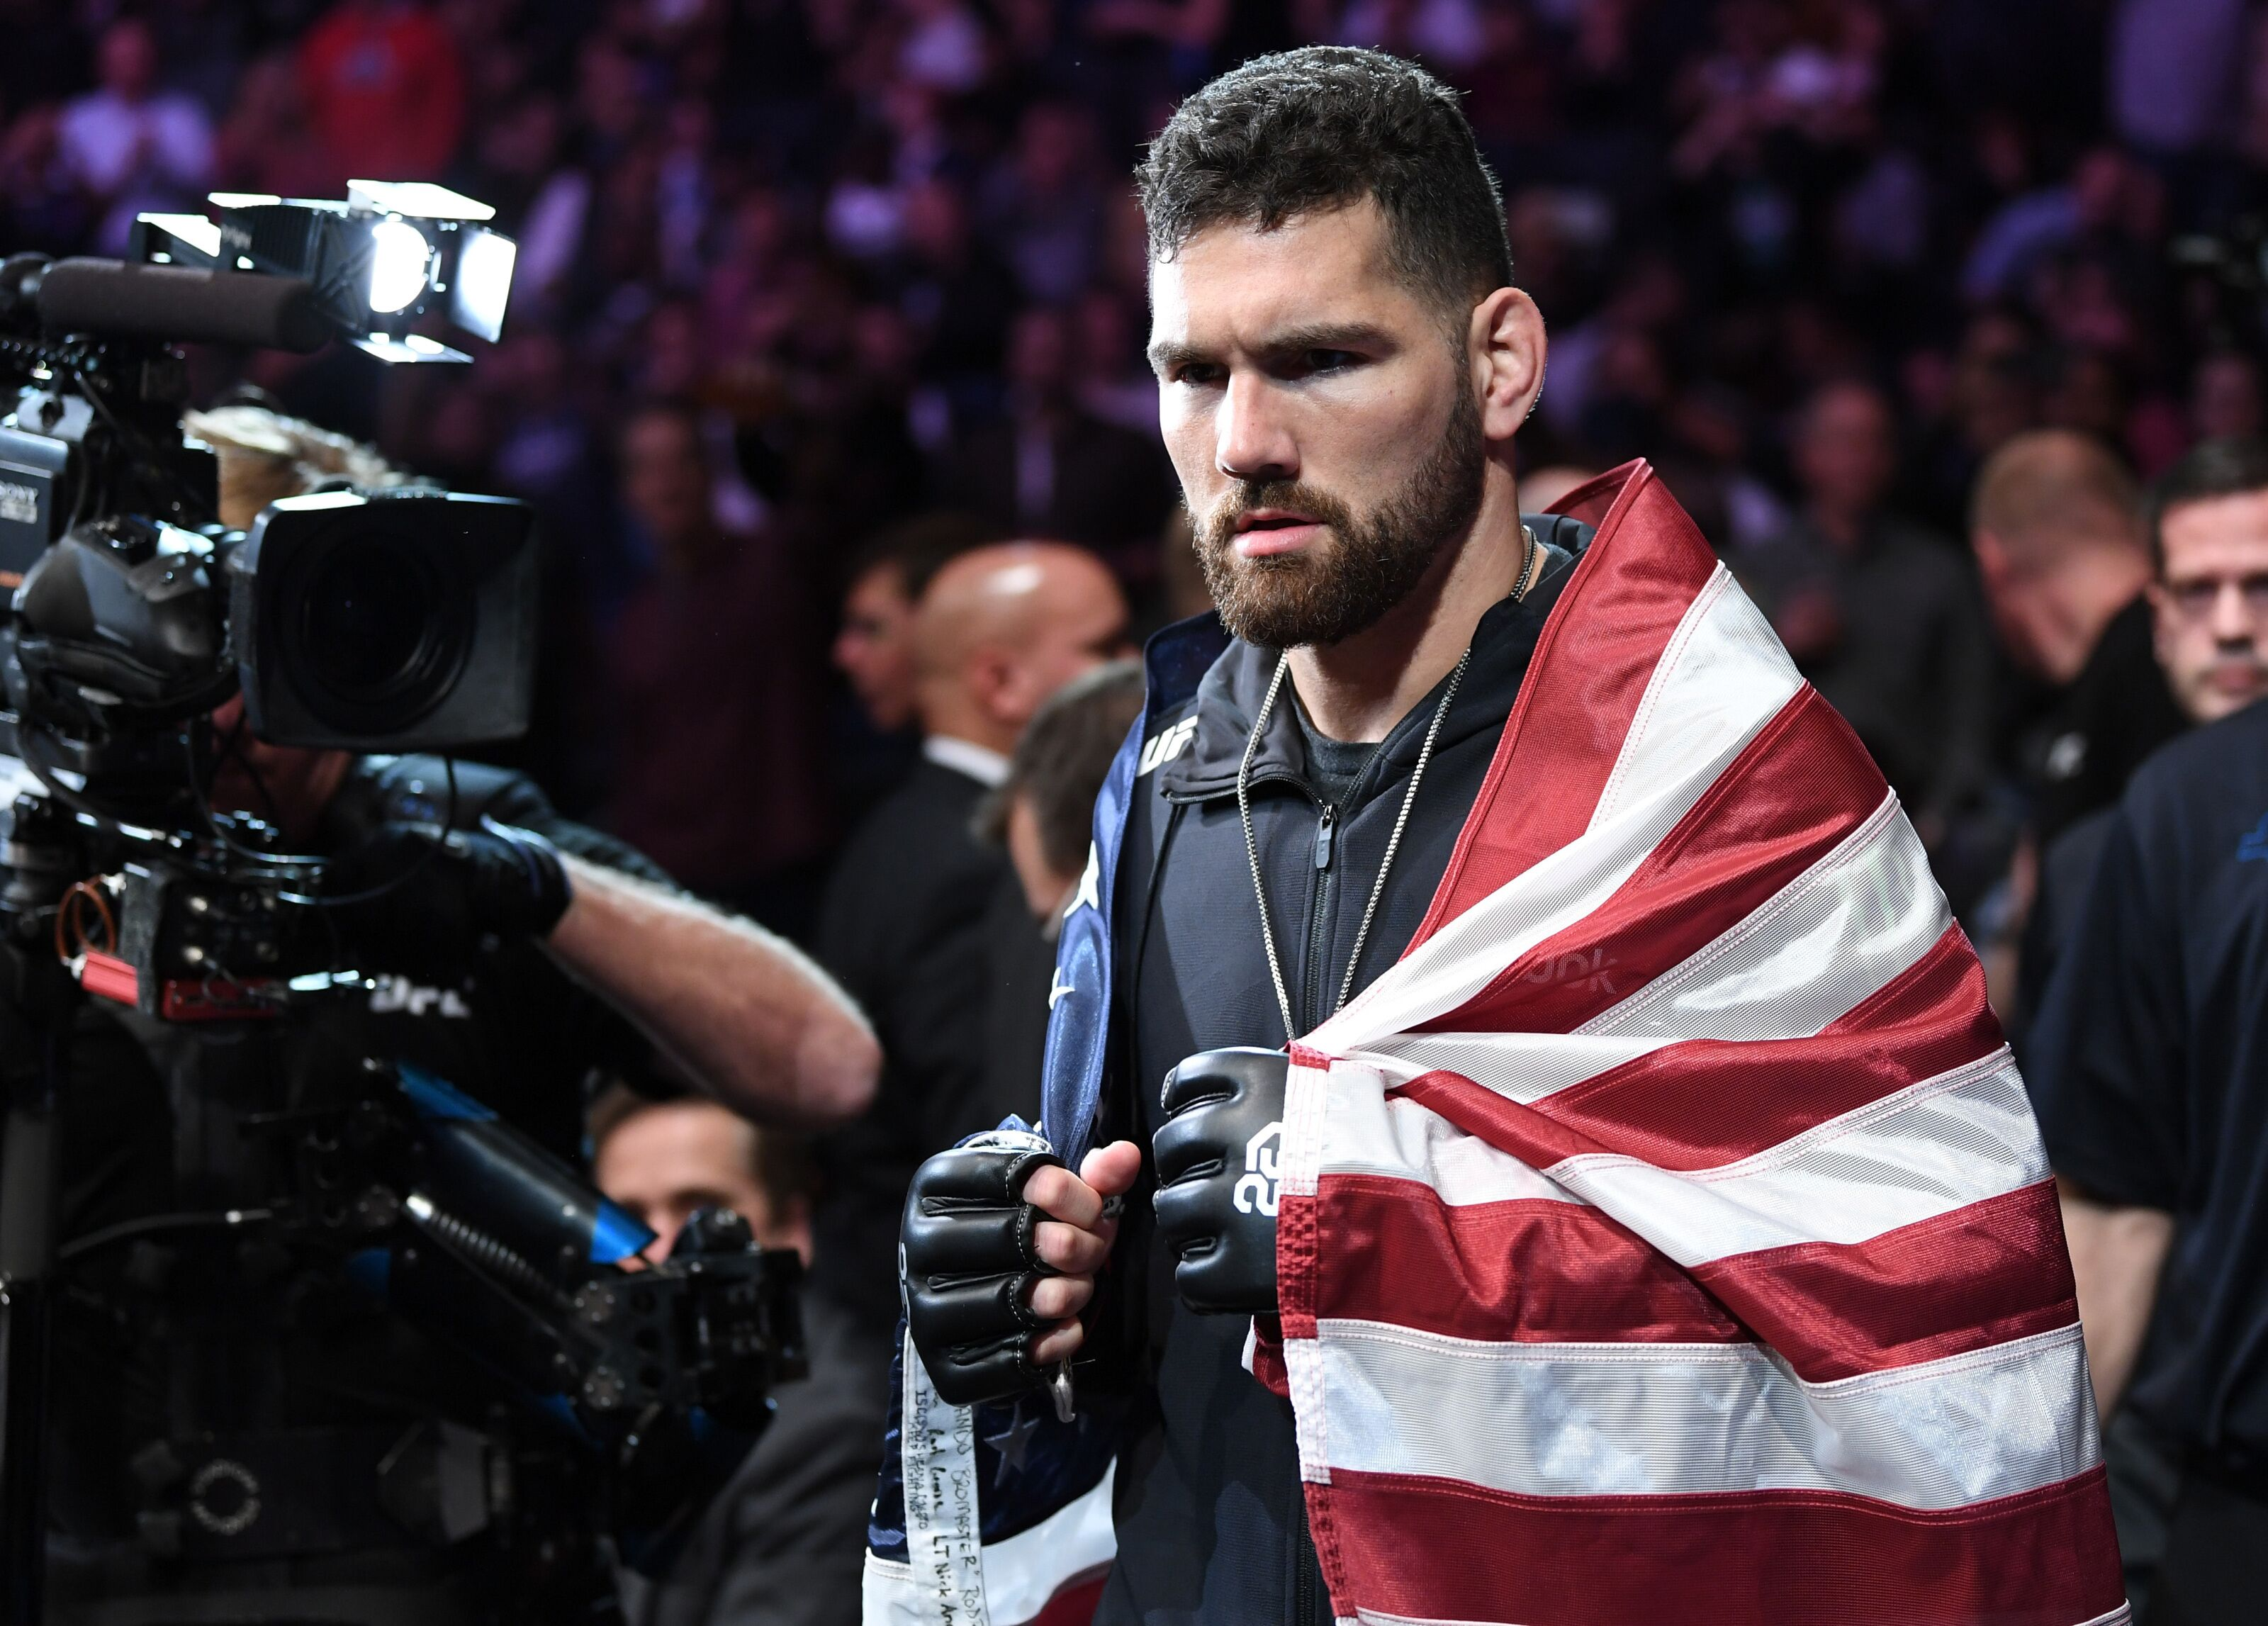 UFC Boston: Dominick Reyes vs. Chris Weidman preview and predictions